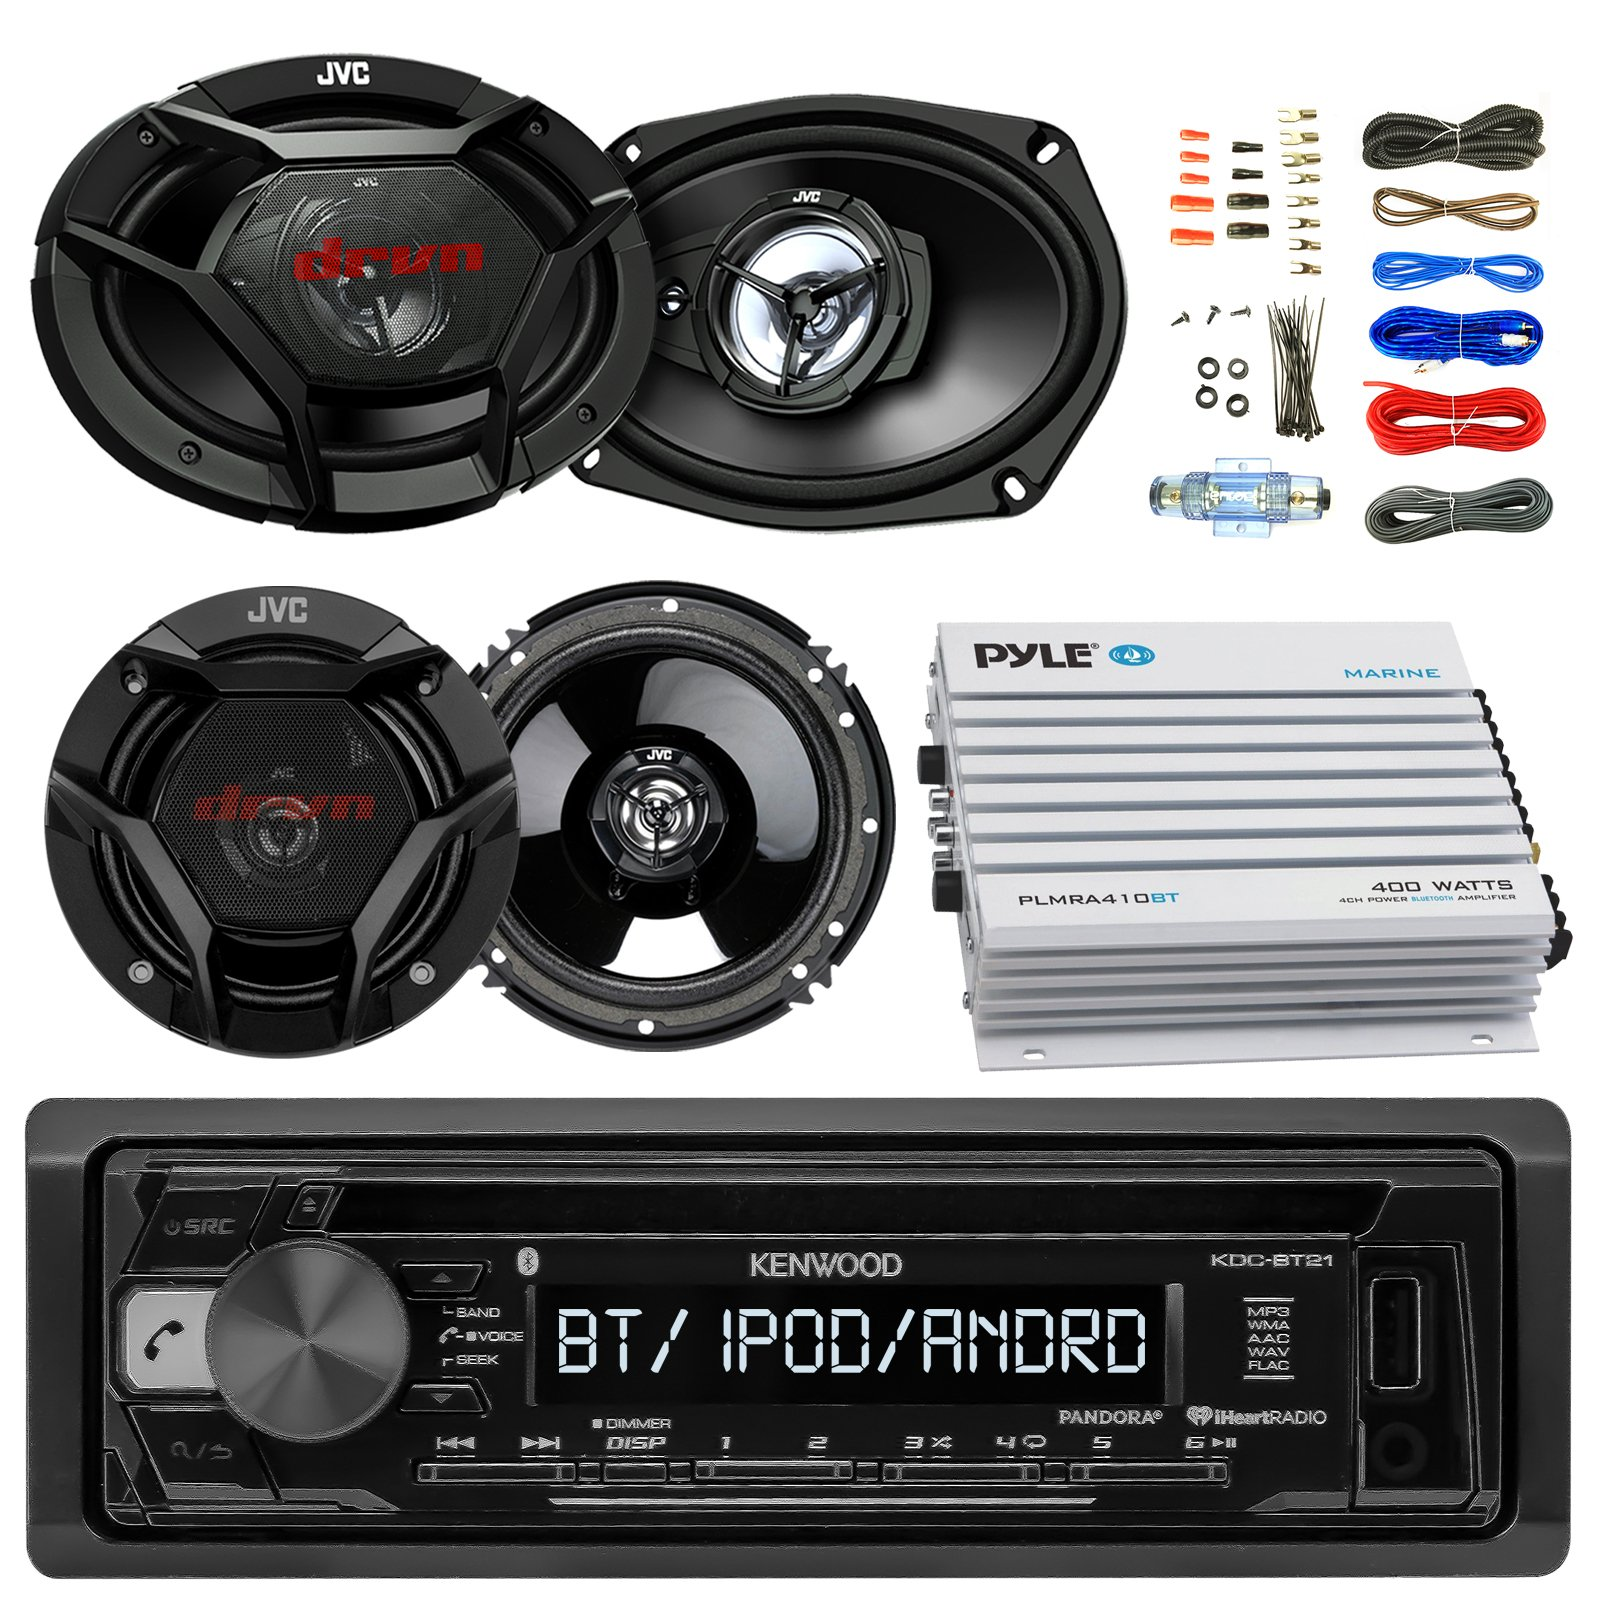 Kenwood KDCBT21 Car CD Player Receiver Bluetooth USB AUX Radio - Bundle Combo With 2x JVC 6x9'' 3-Way Vehicle Coaxial Speakers + 2x 6.5'' Inch 2-Way Audio Speakers + 4-Channel Amplifier + Amp Kit